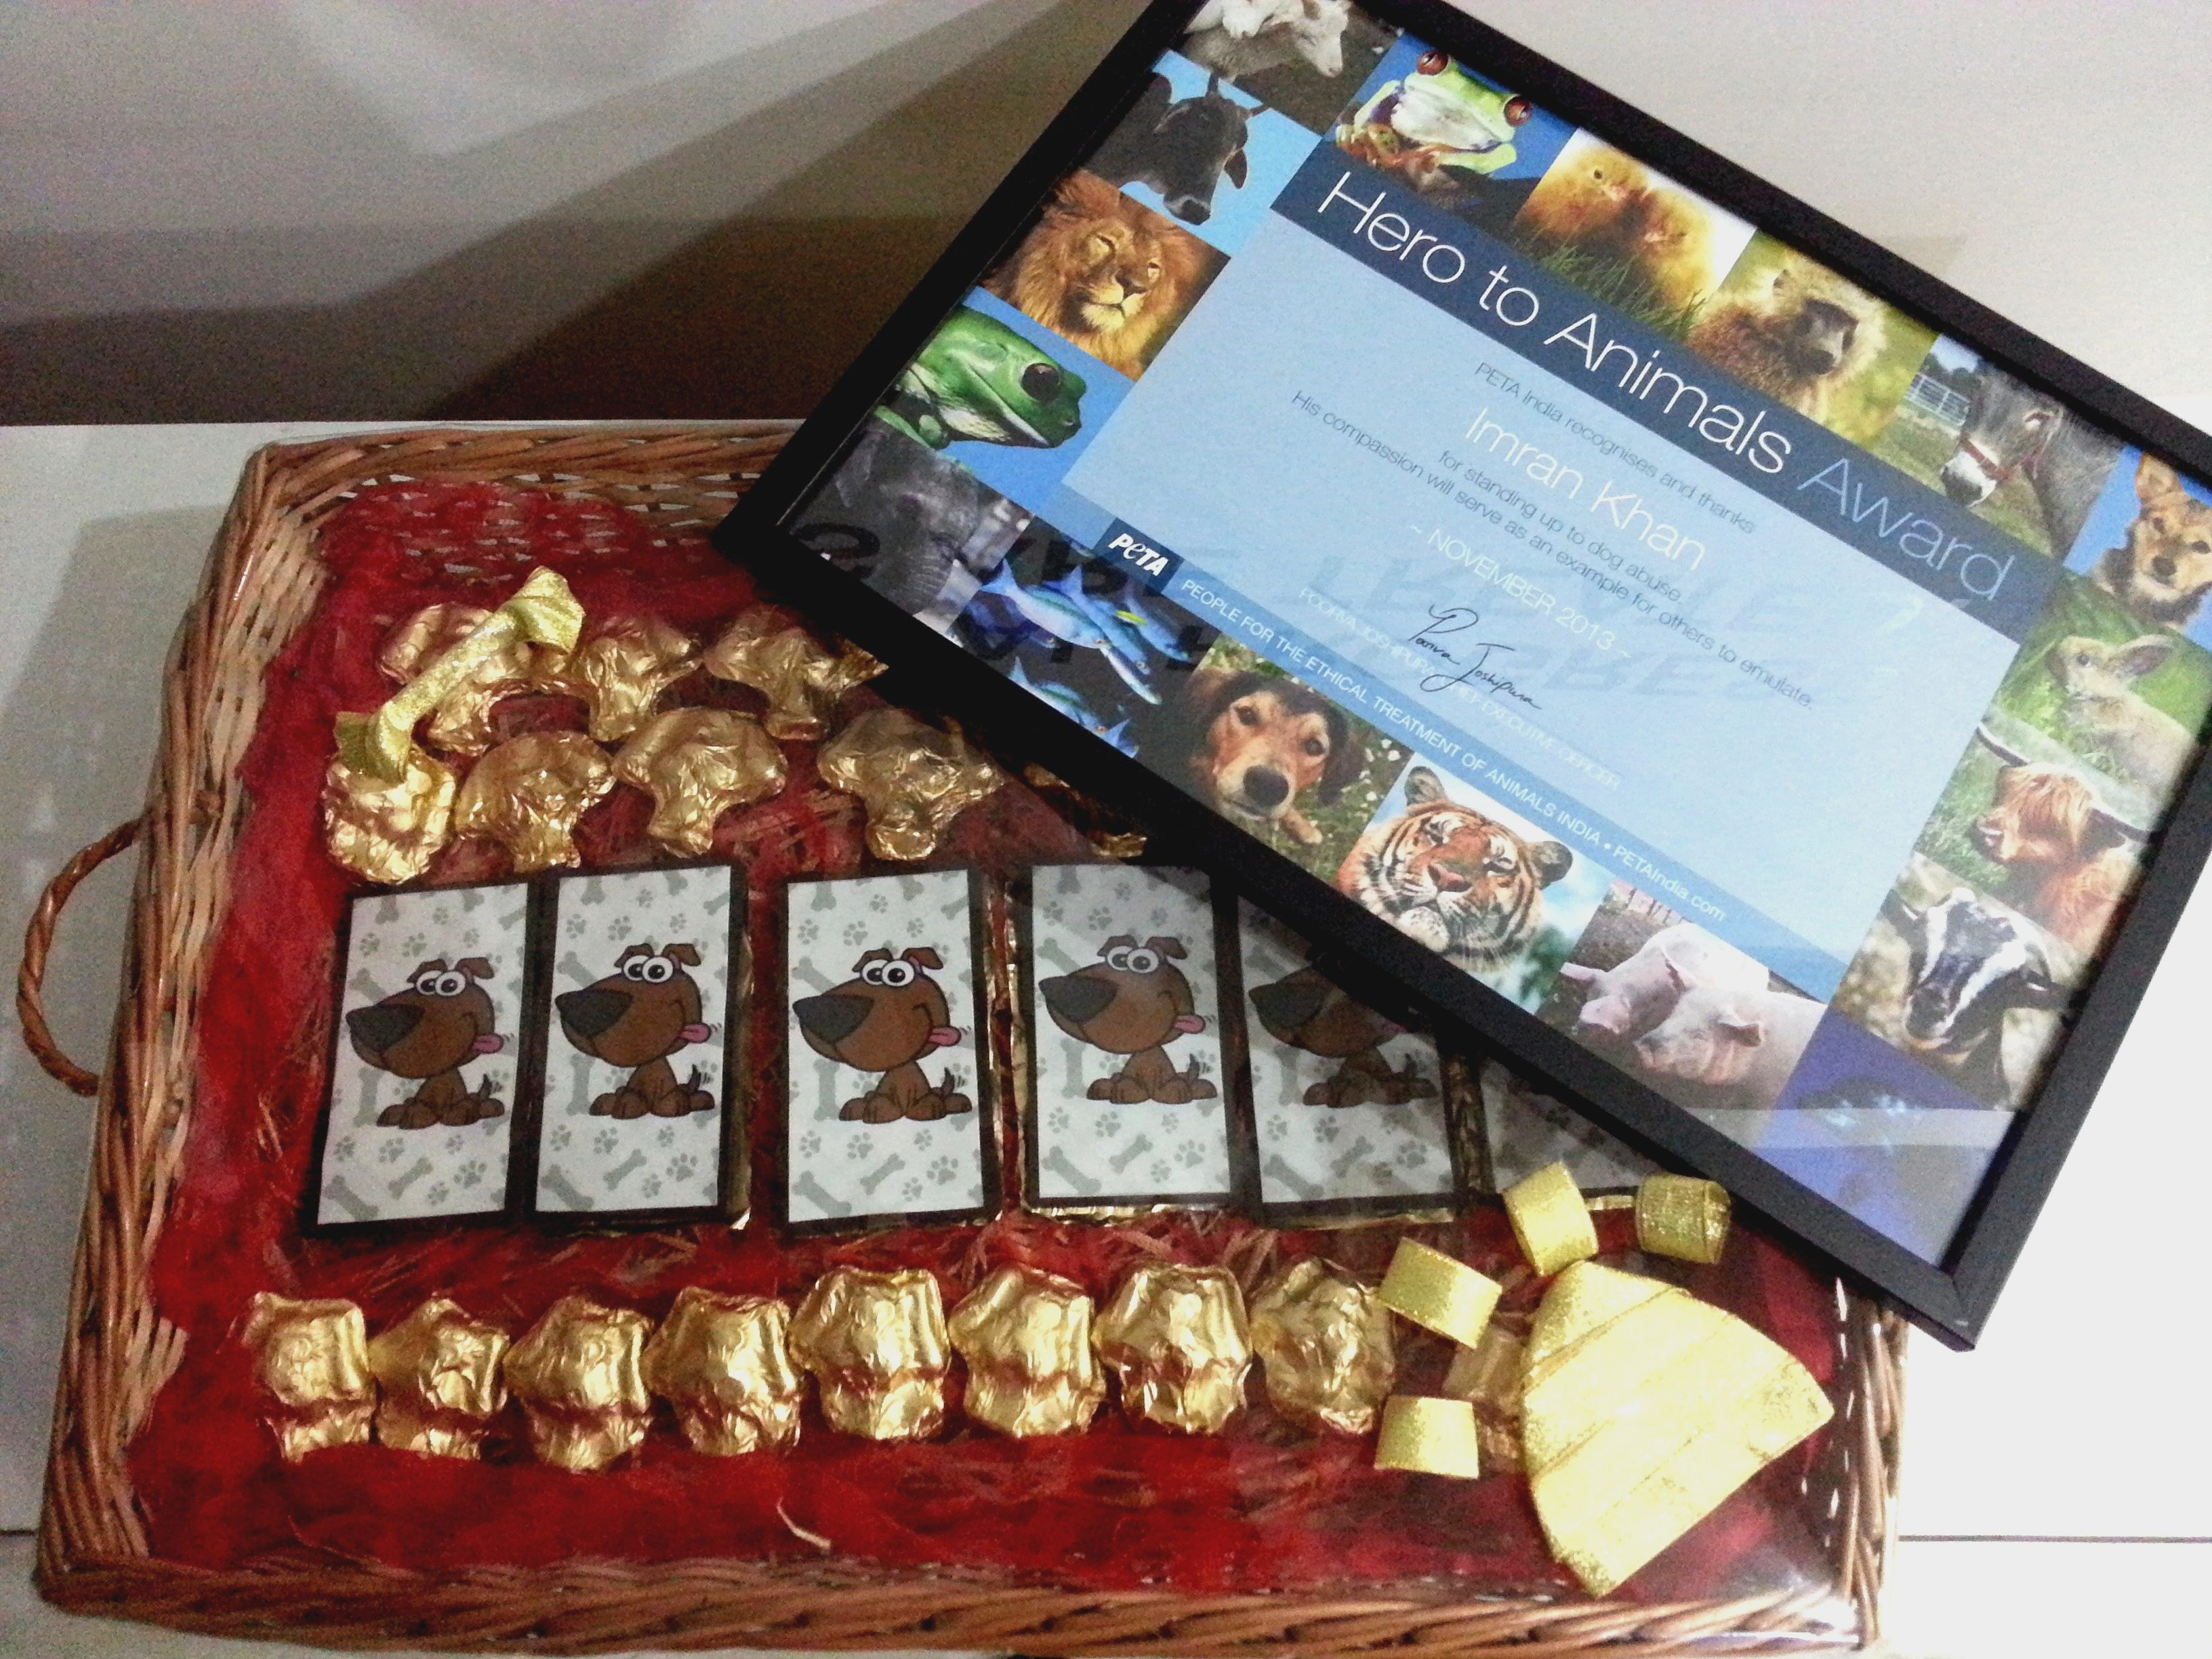 Award and chocolates